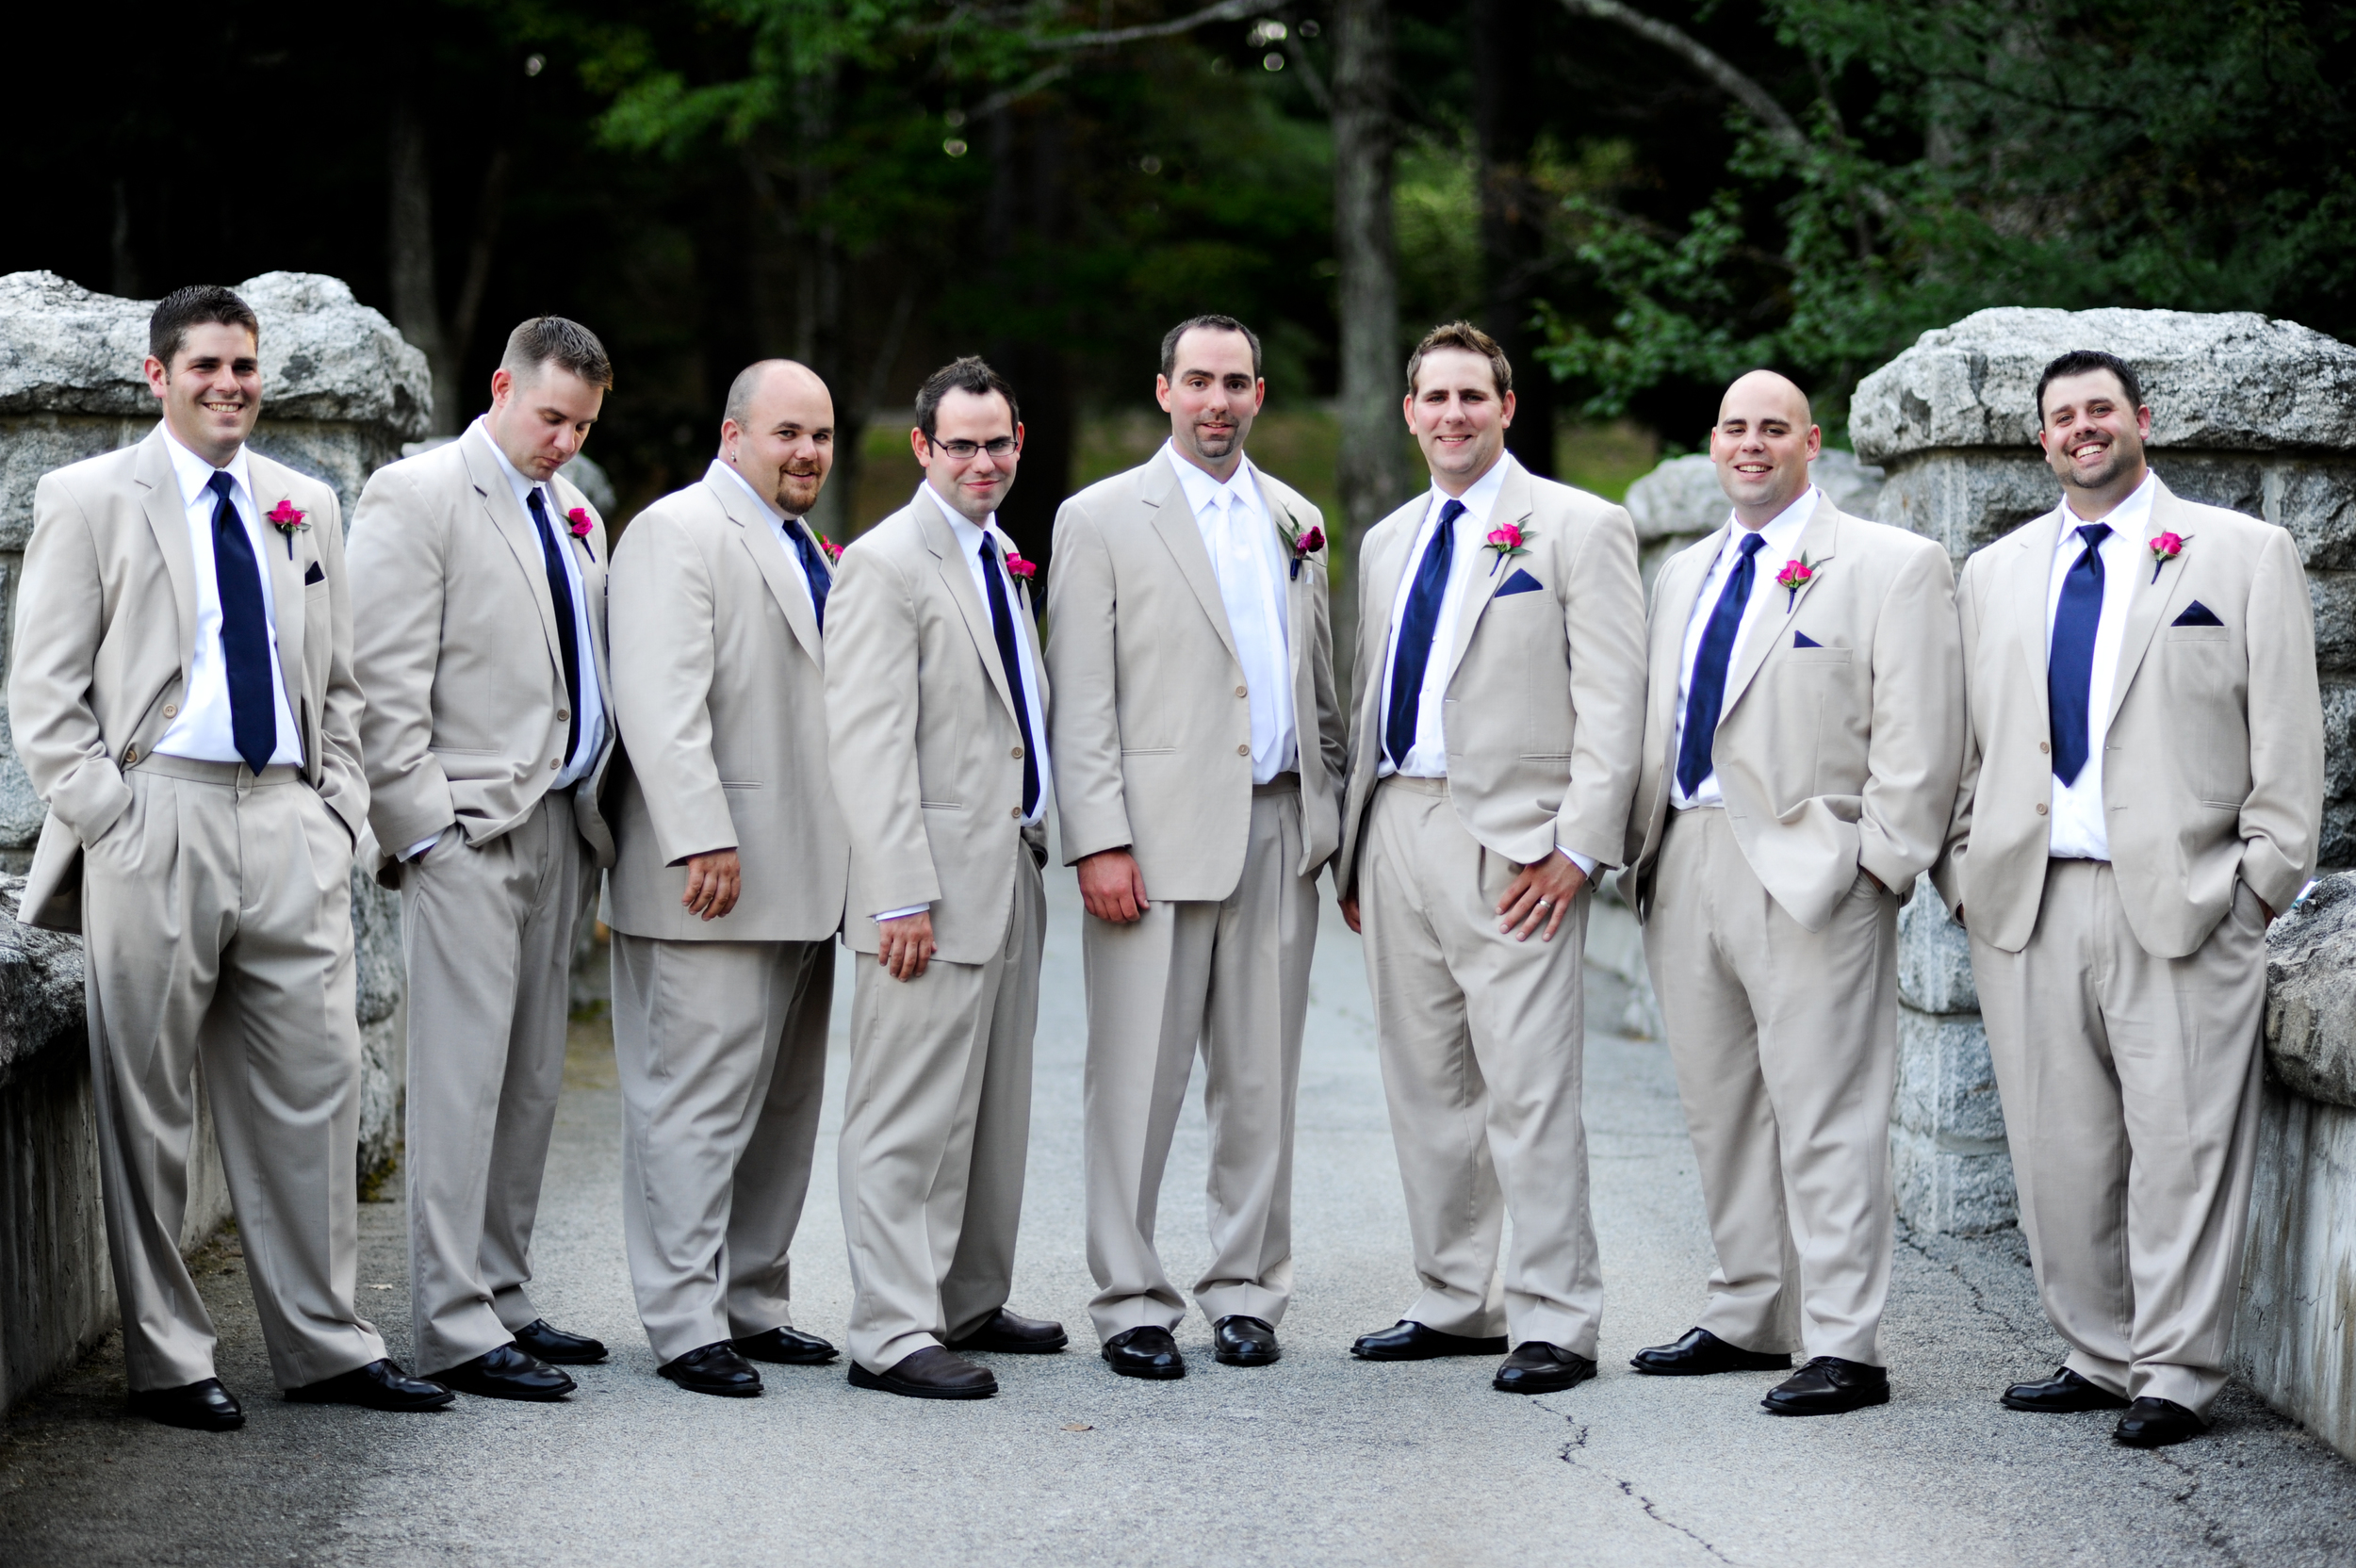 The handsome groom and his groomsmen